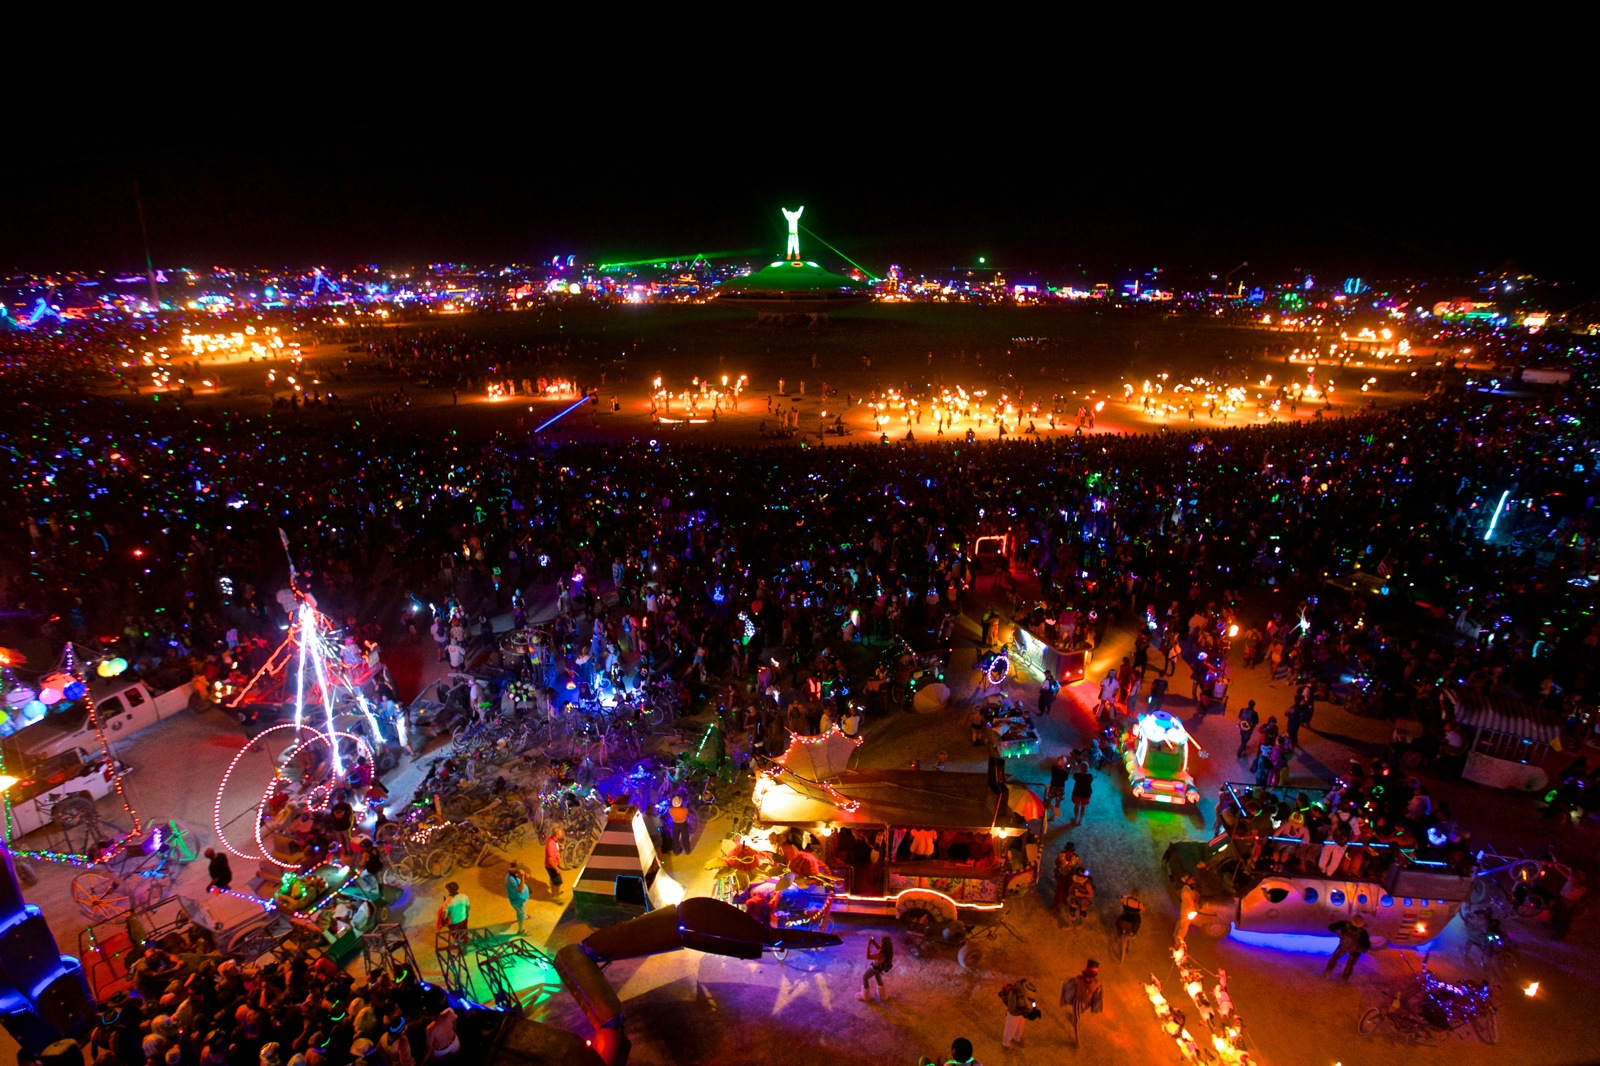 Burning_Man_2013_Sidney_Erthal - 3